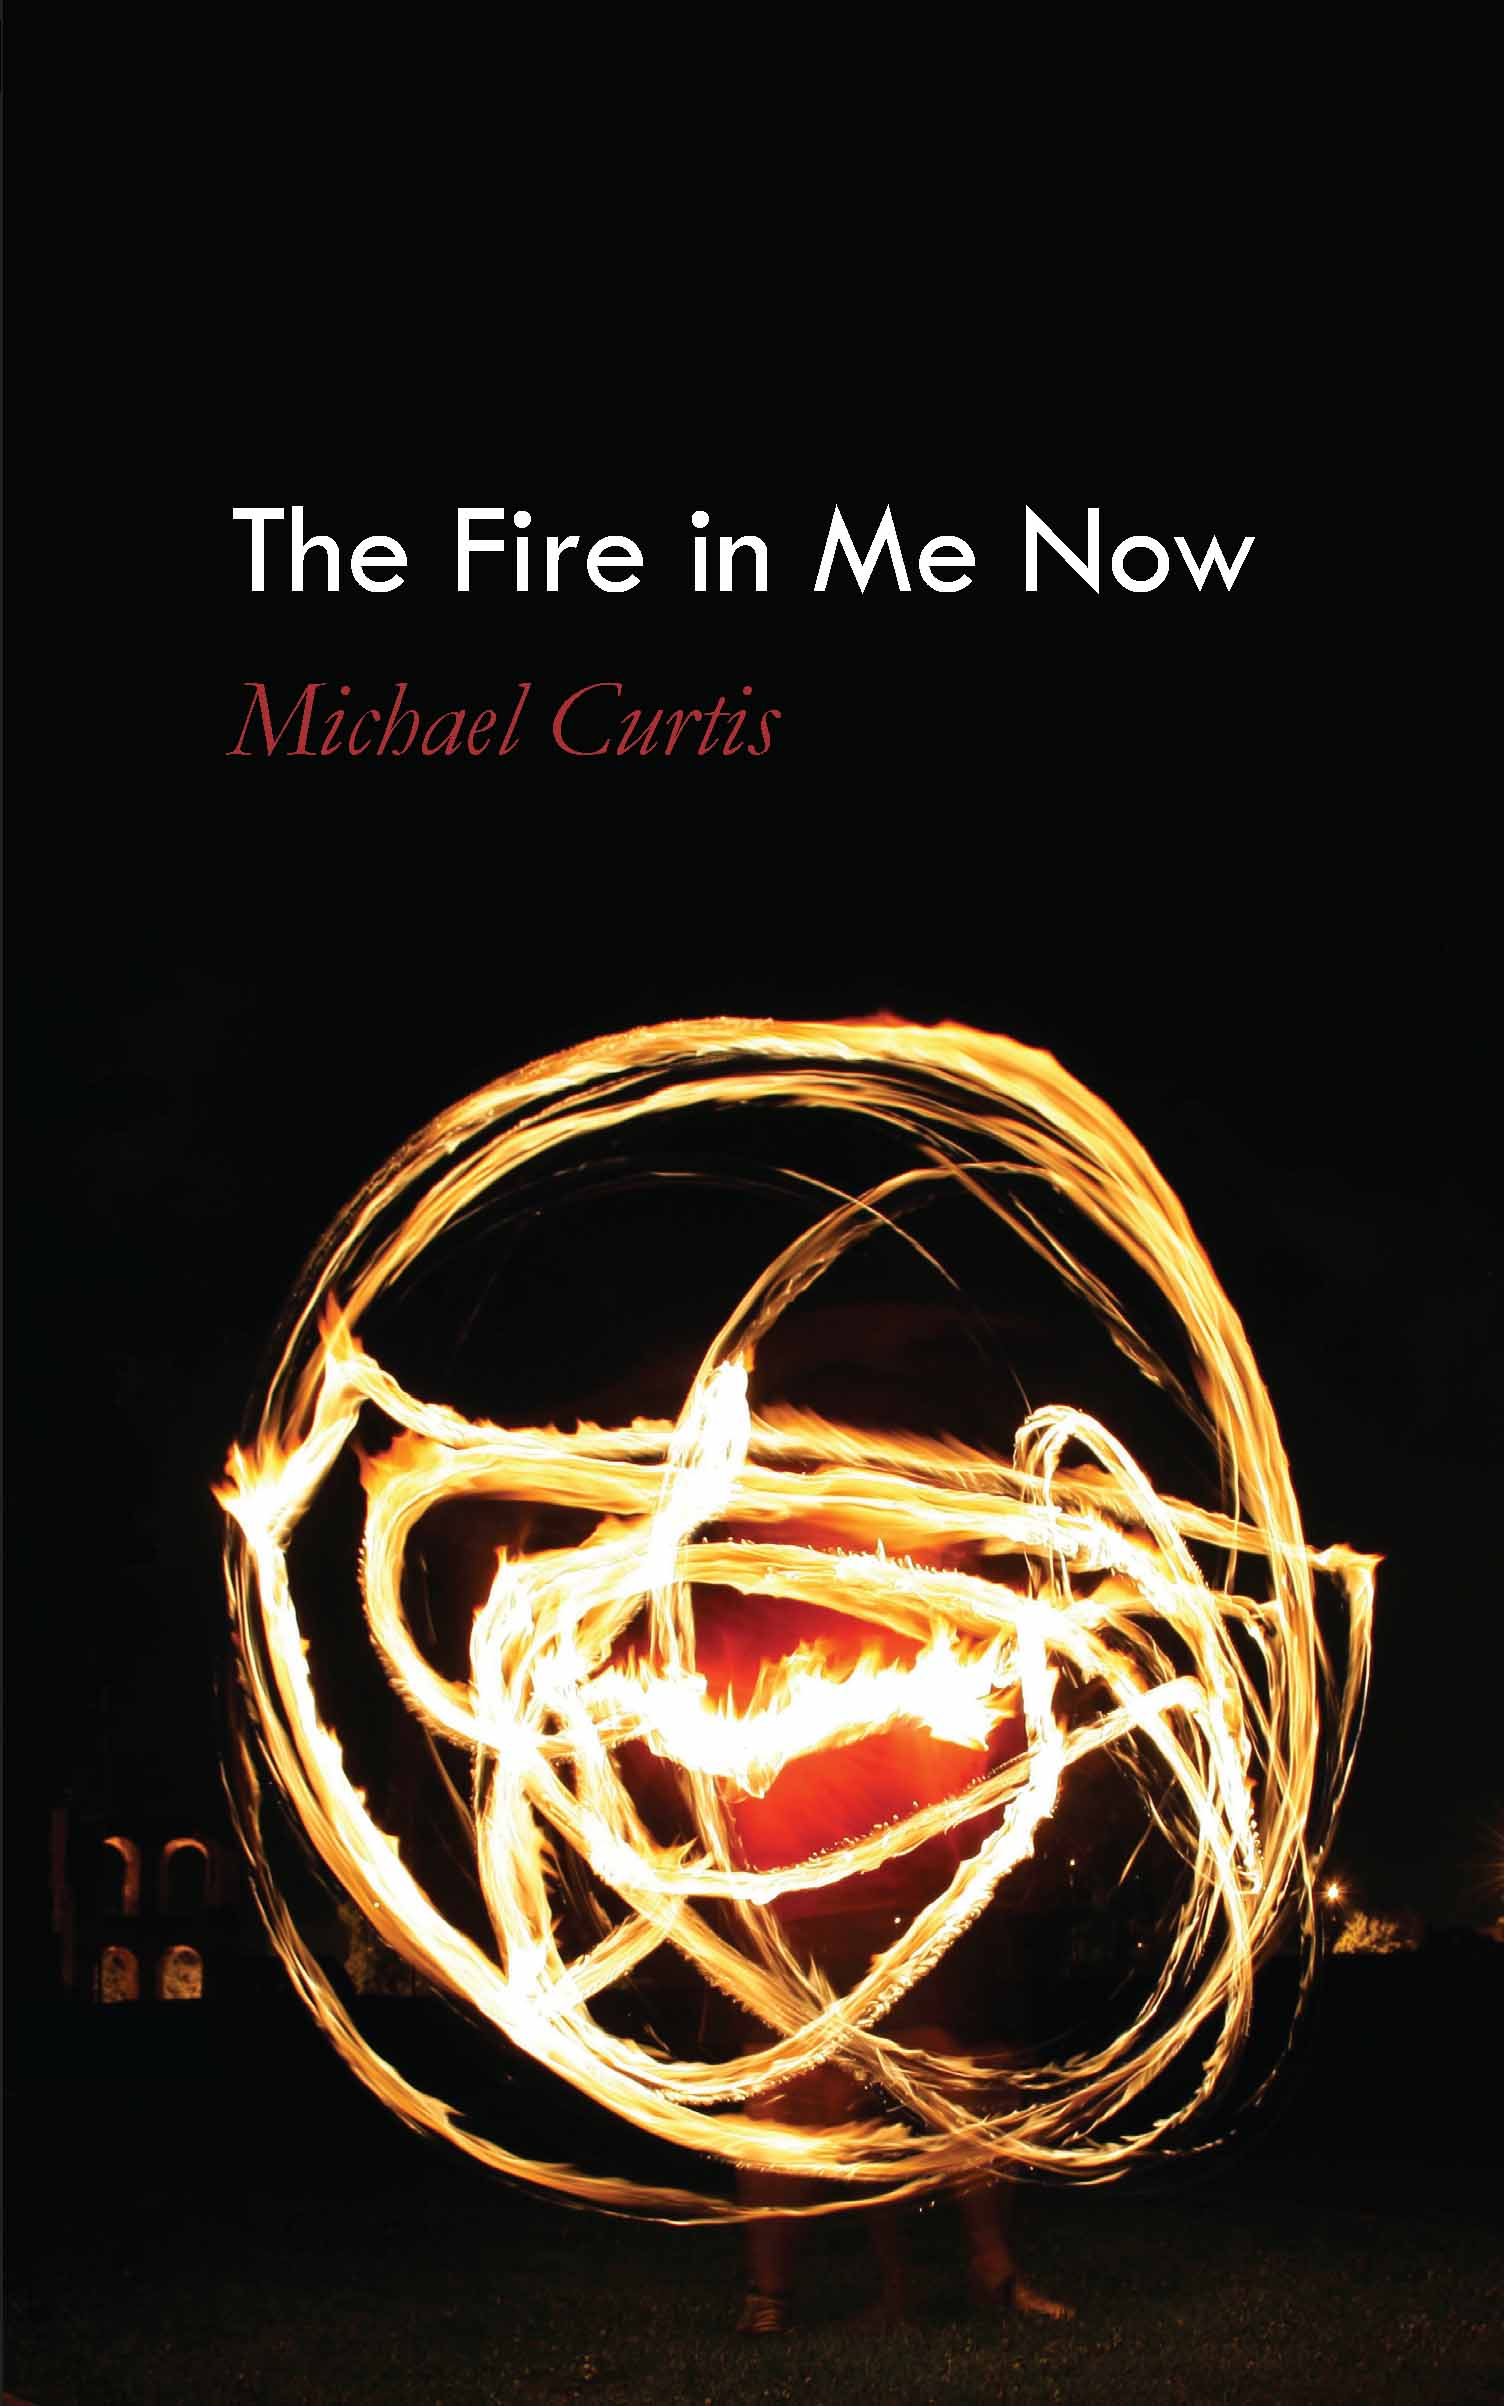 The Fire In Me Now by Michael Curtis